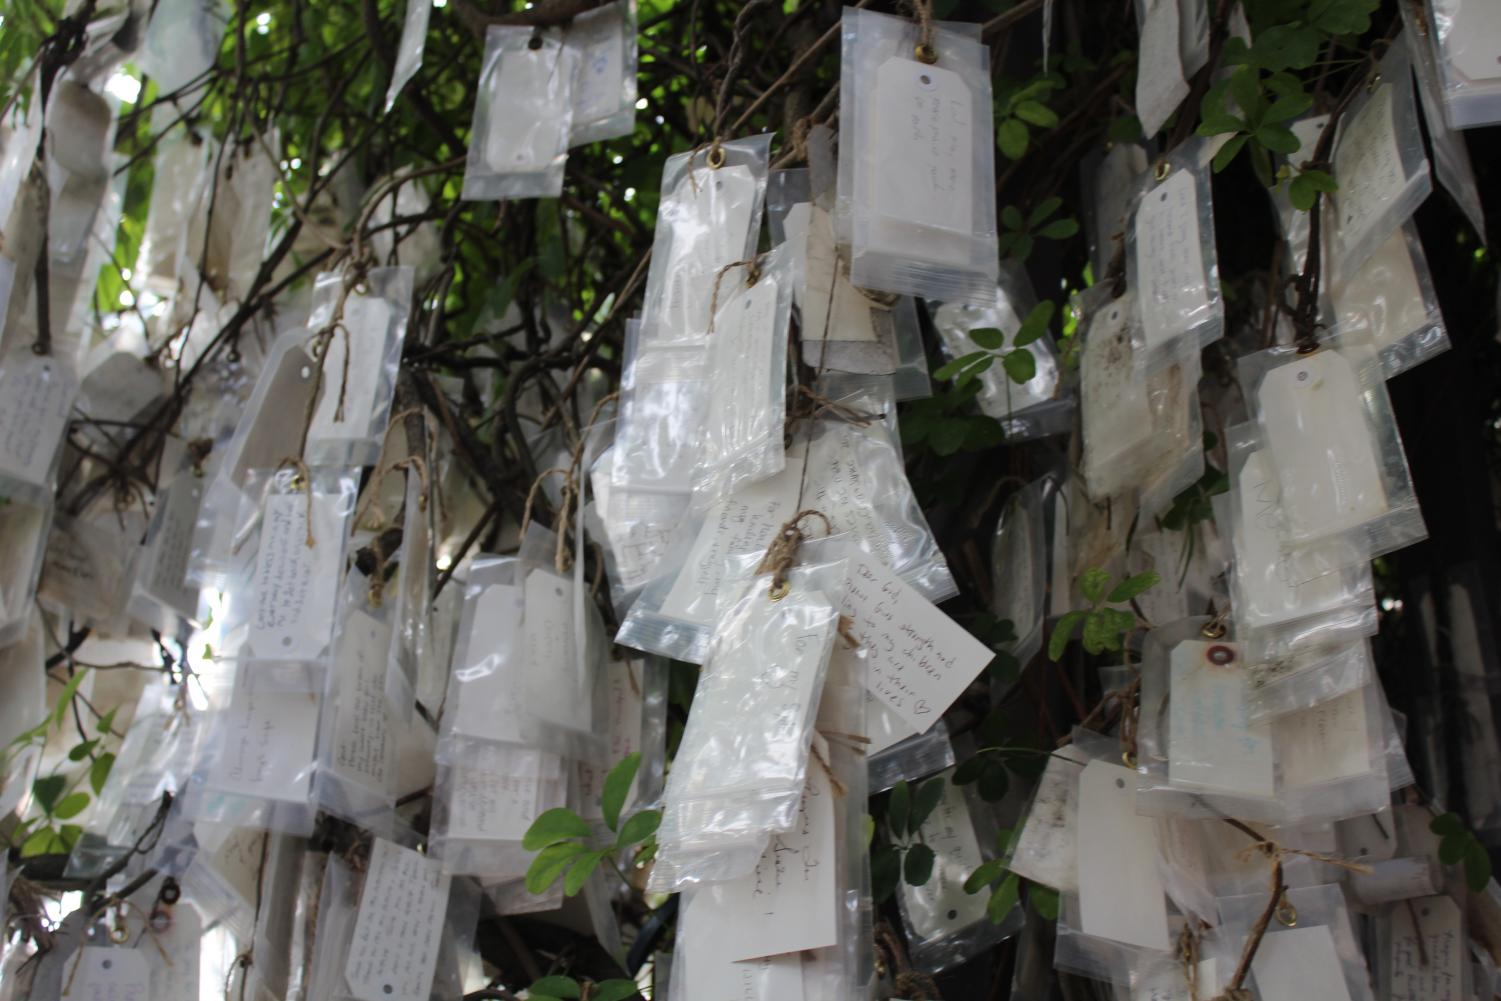 A cluster of prayers left by passerby's. There are many connected in groups around multiple limbs of the tree.